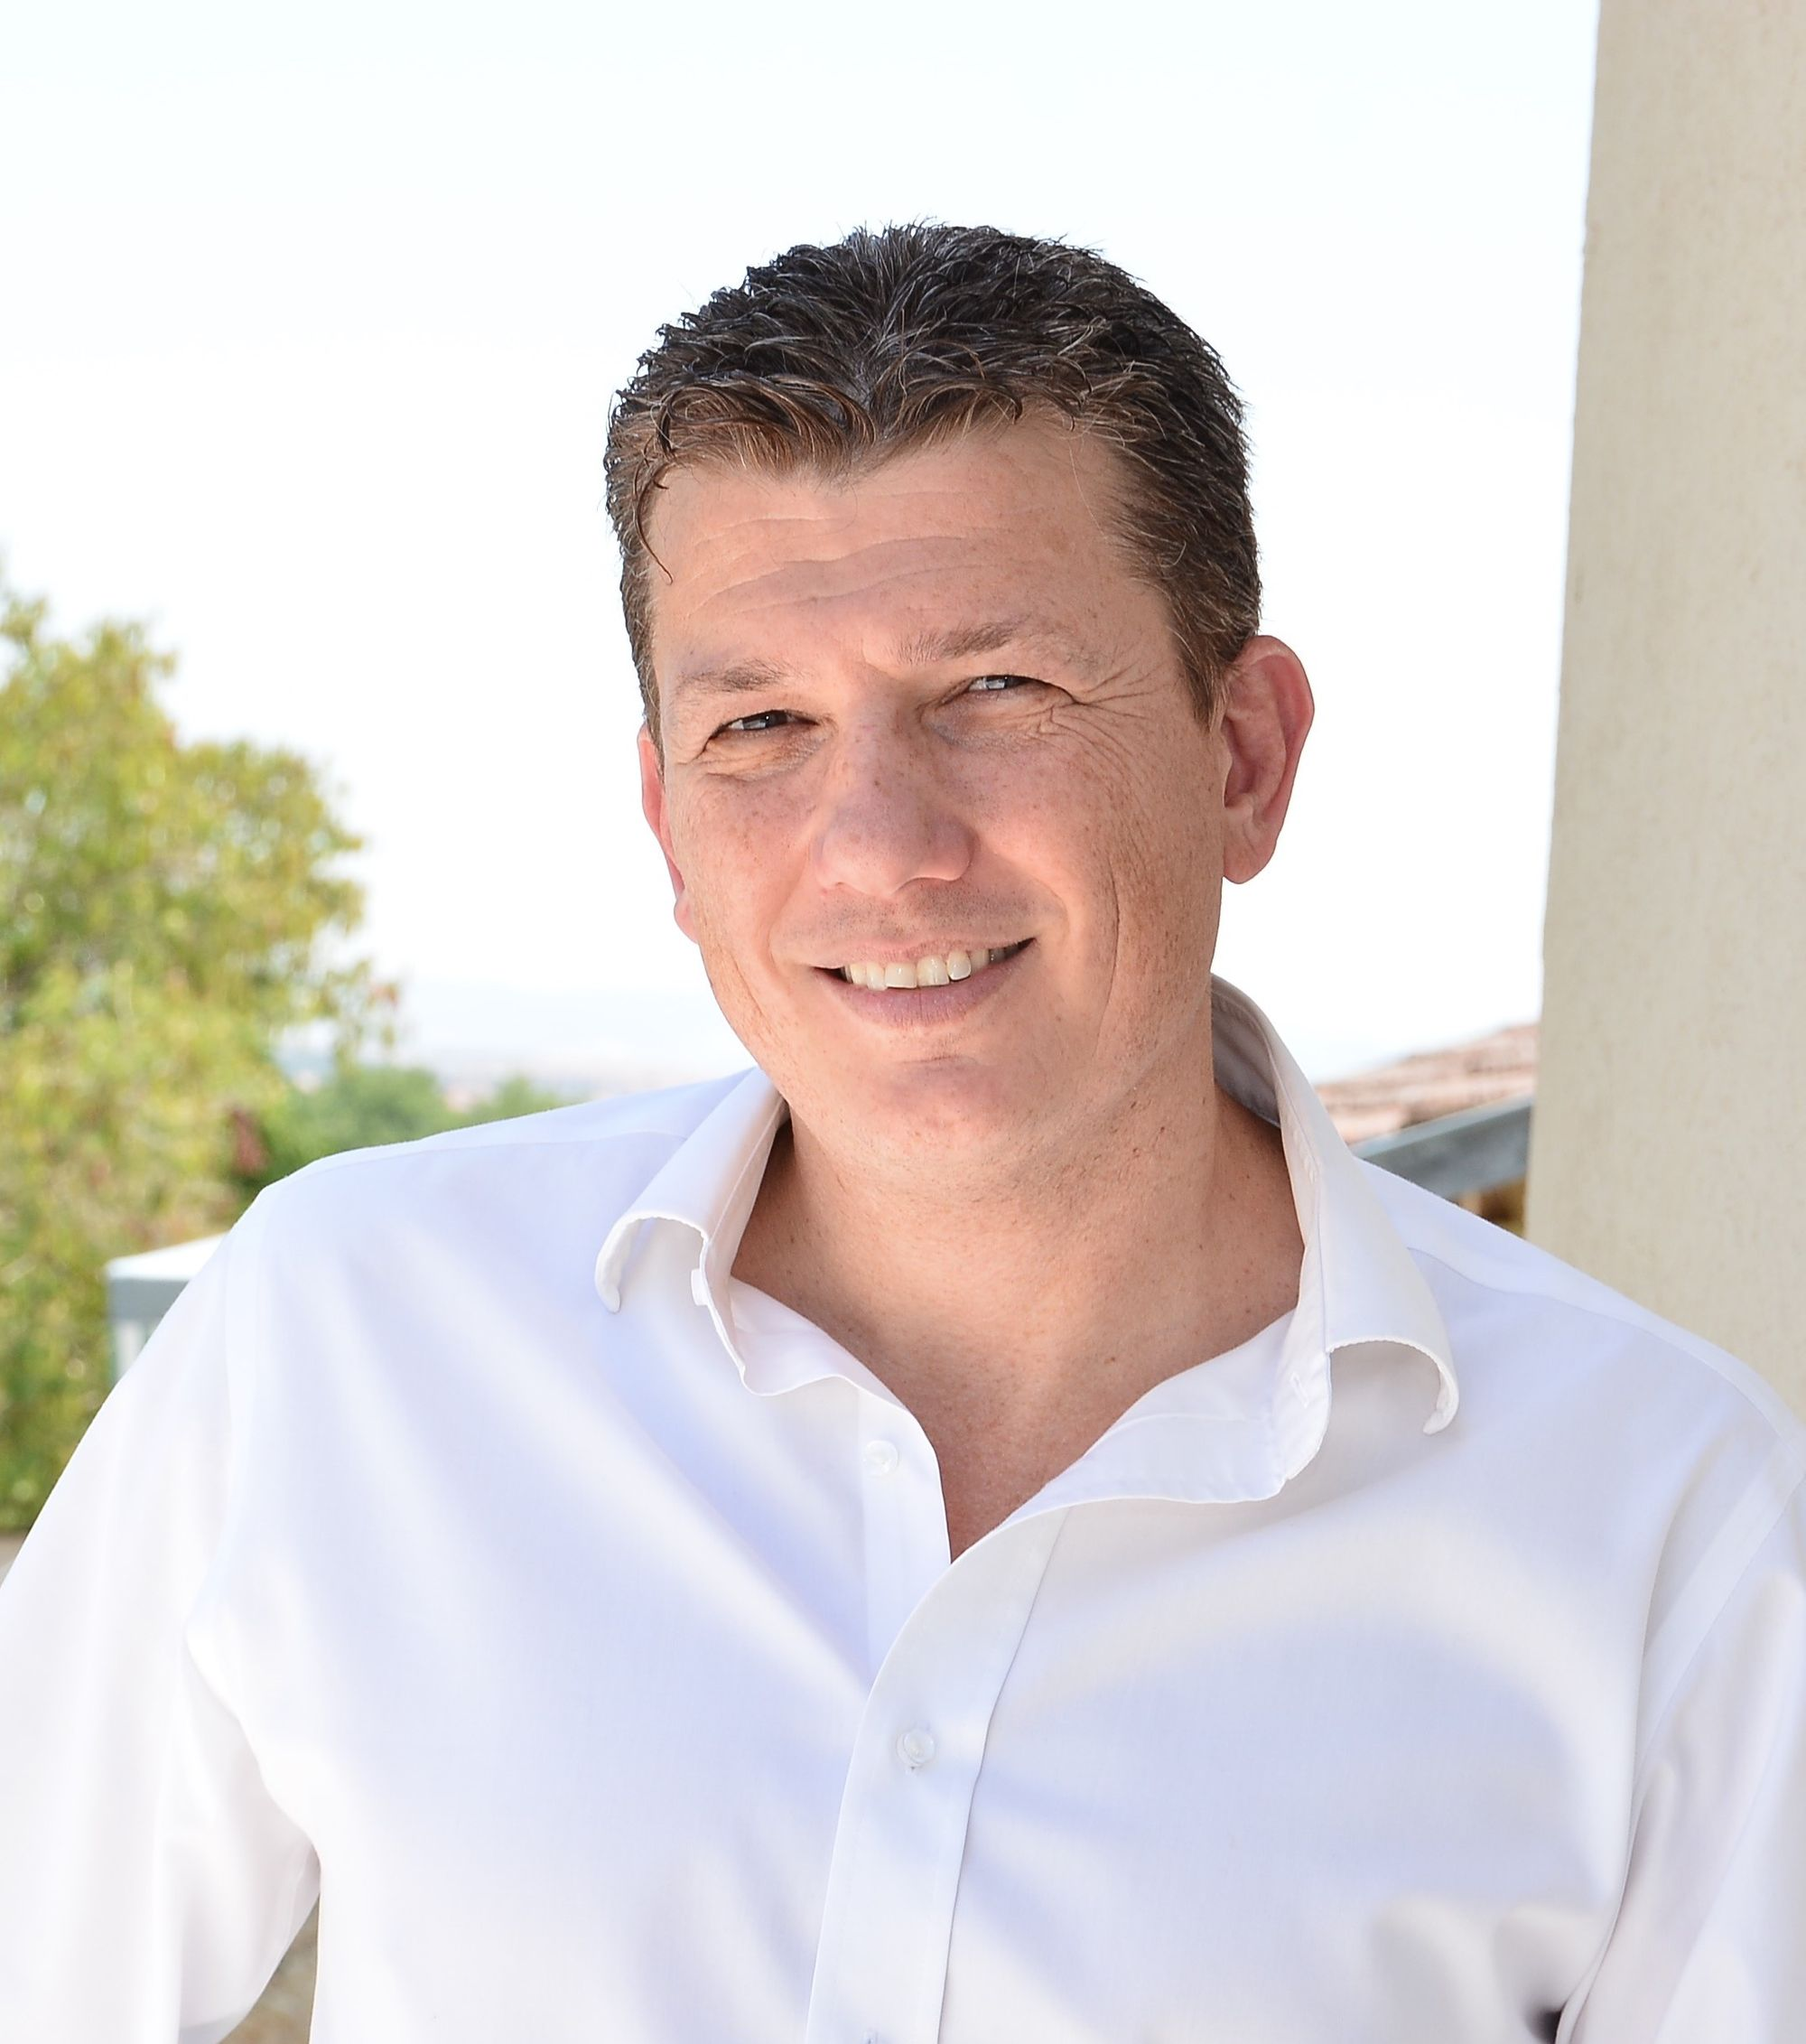 Israeli CEO scores big-time recognition as top innovator in healthcare